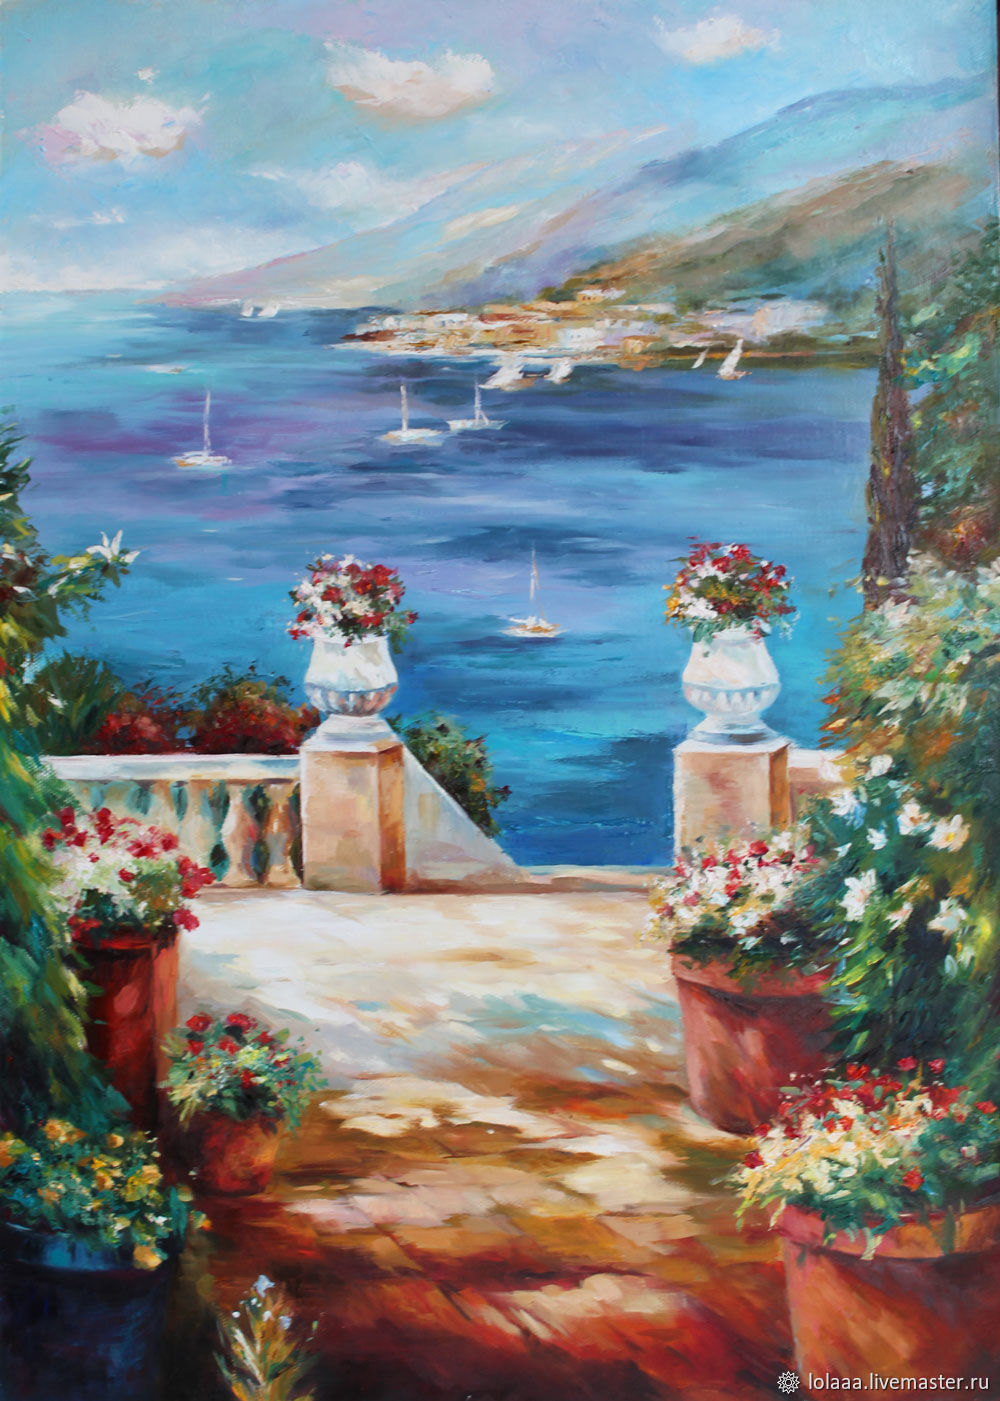 Seaside landscape 'Road to the sea' 50/70 cm, Pictures, Sochi,  Фото №1